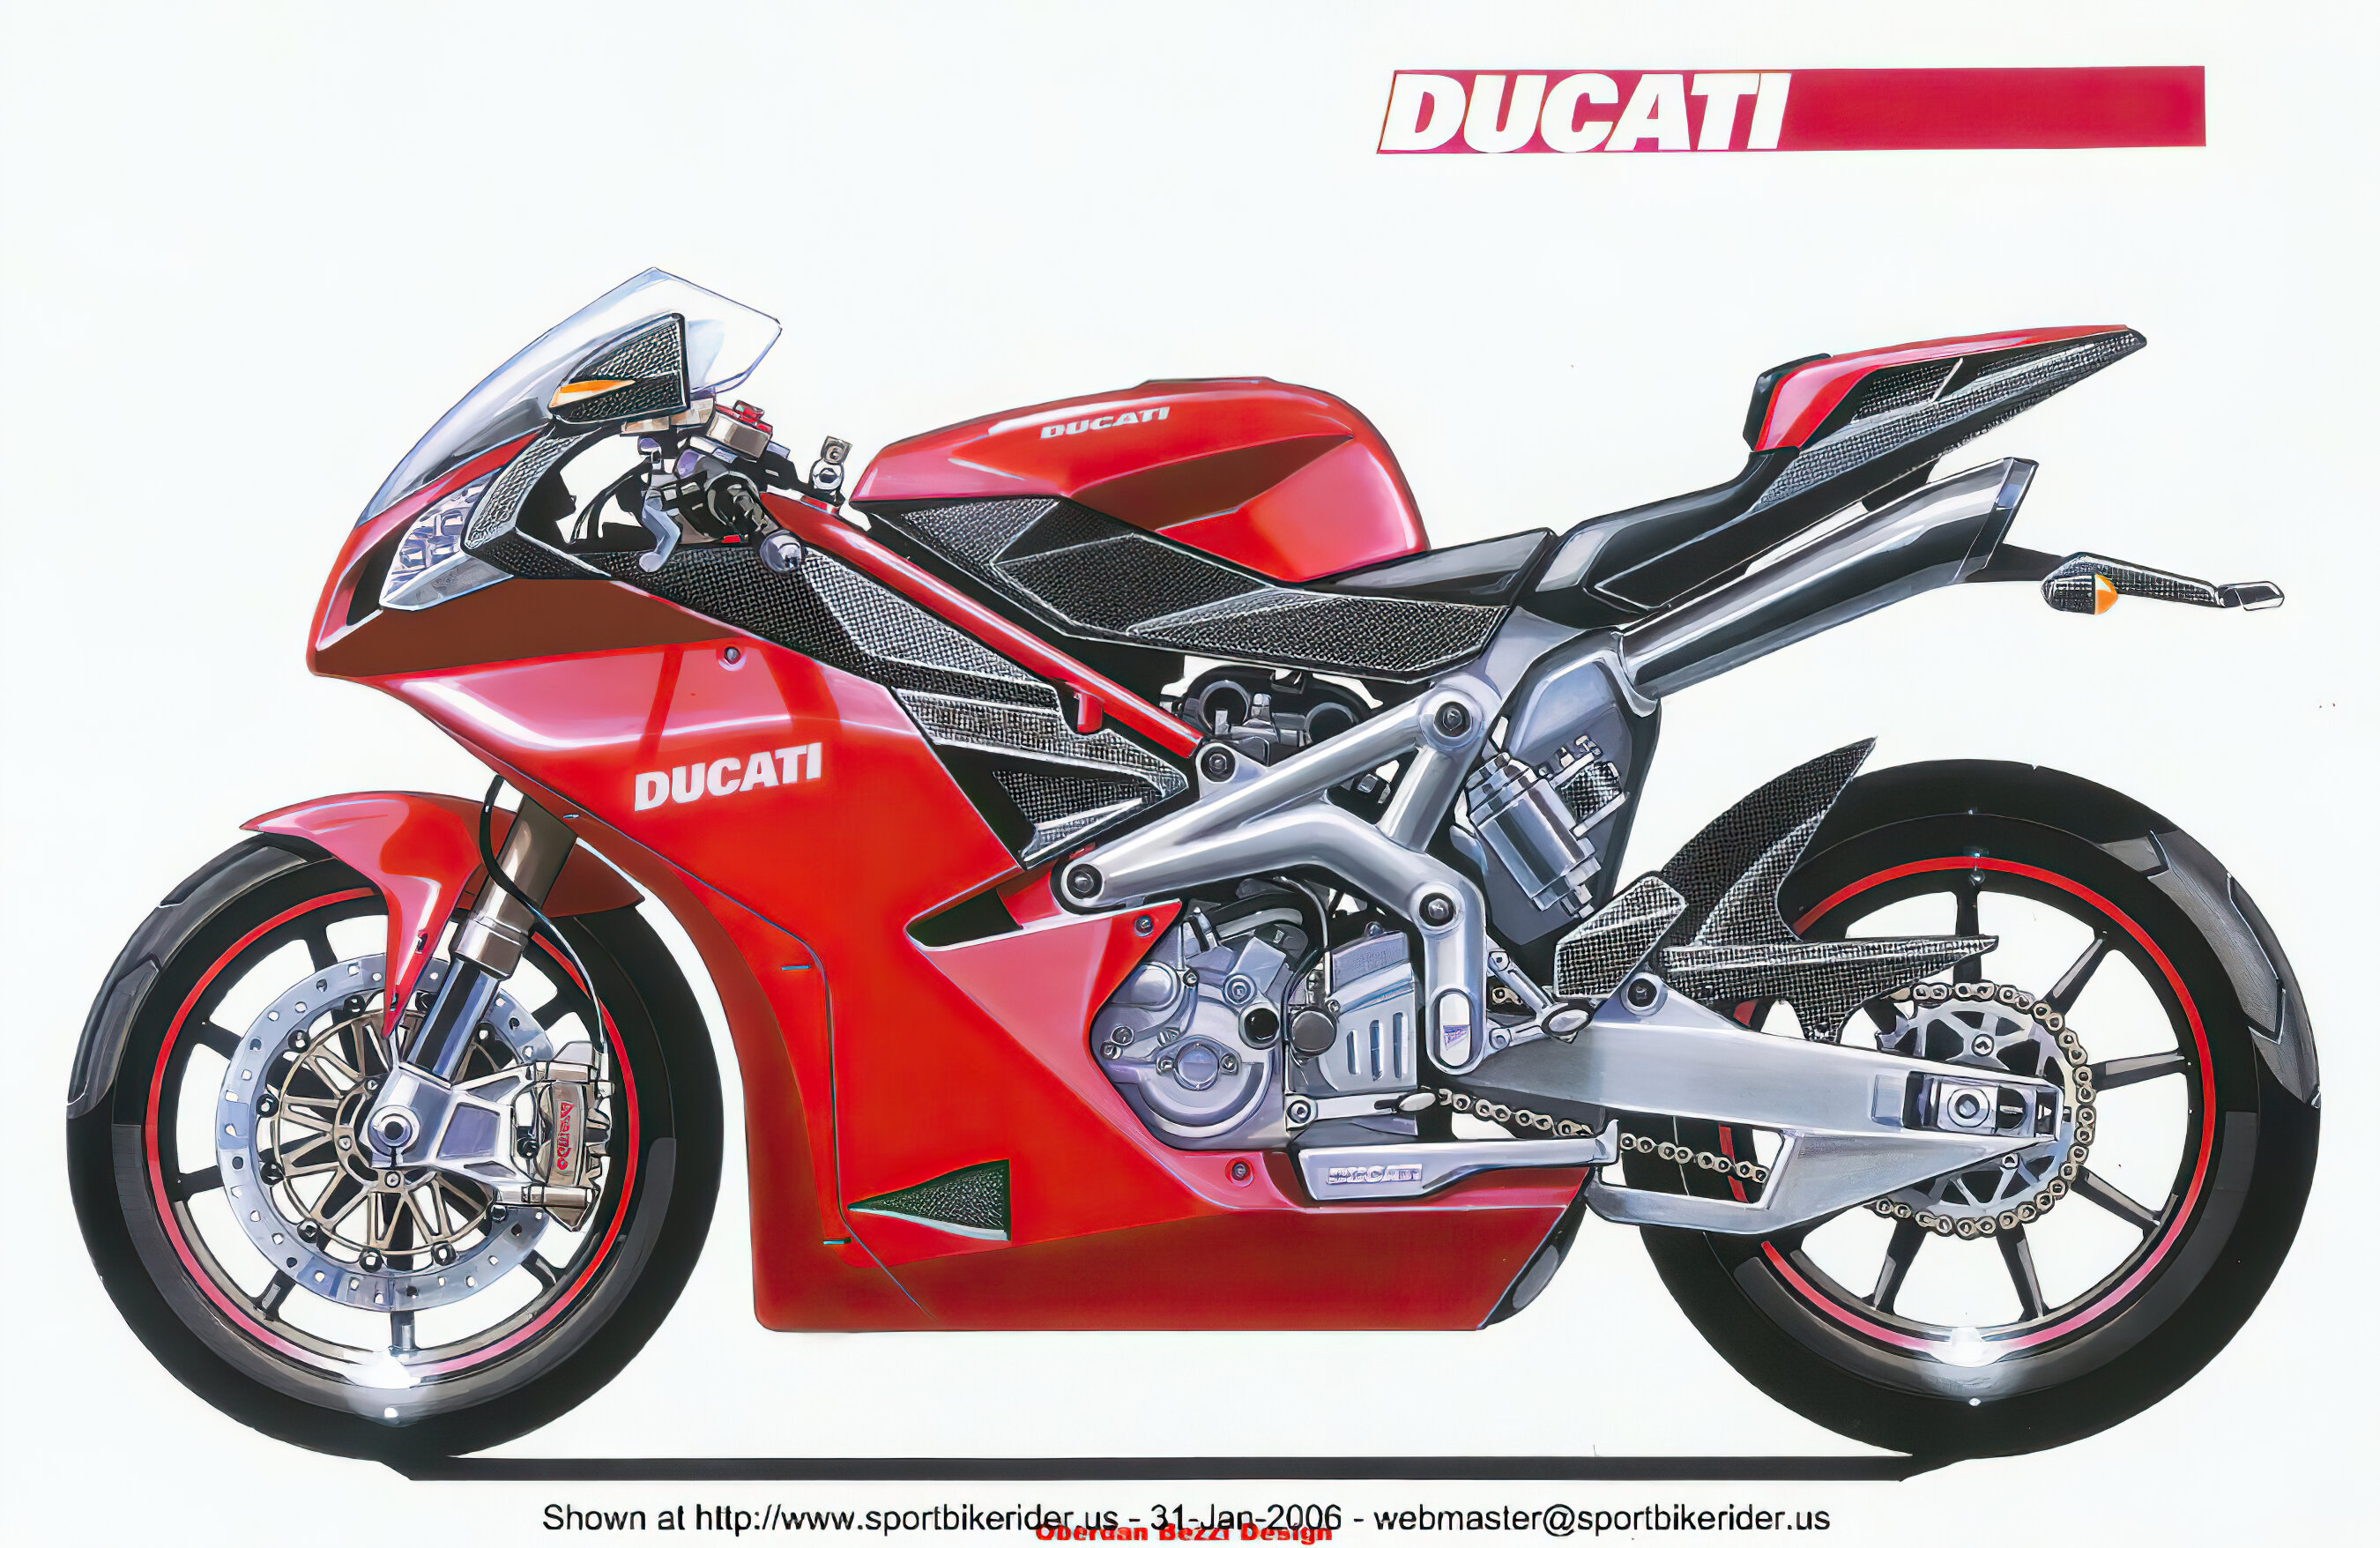 Ducati Unknown (Ducati) - ID: 92280